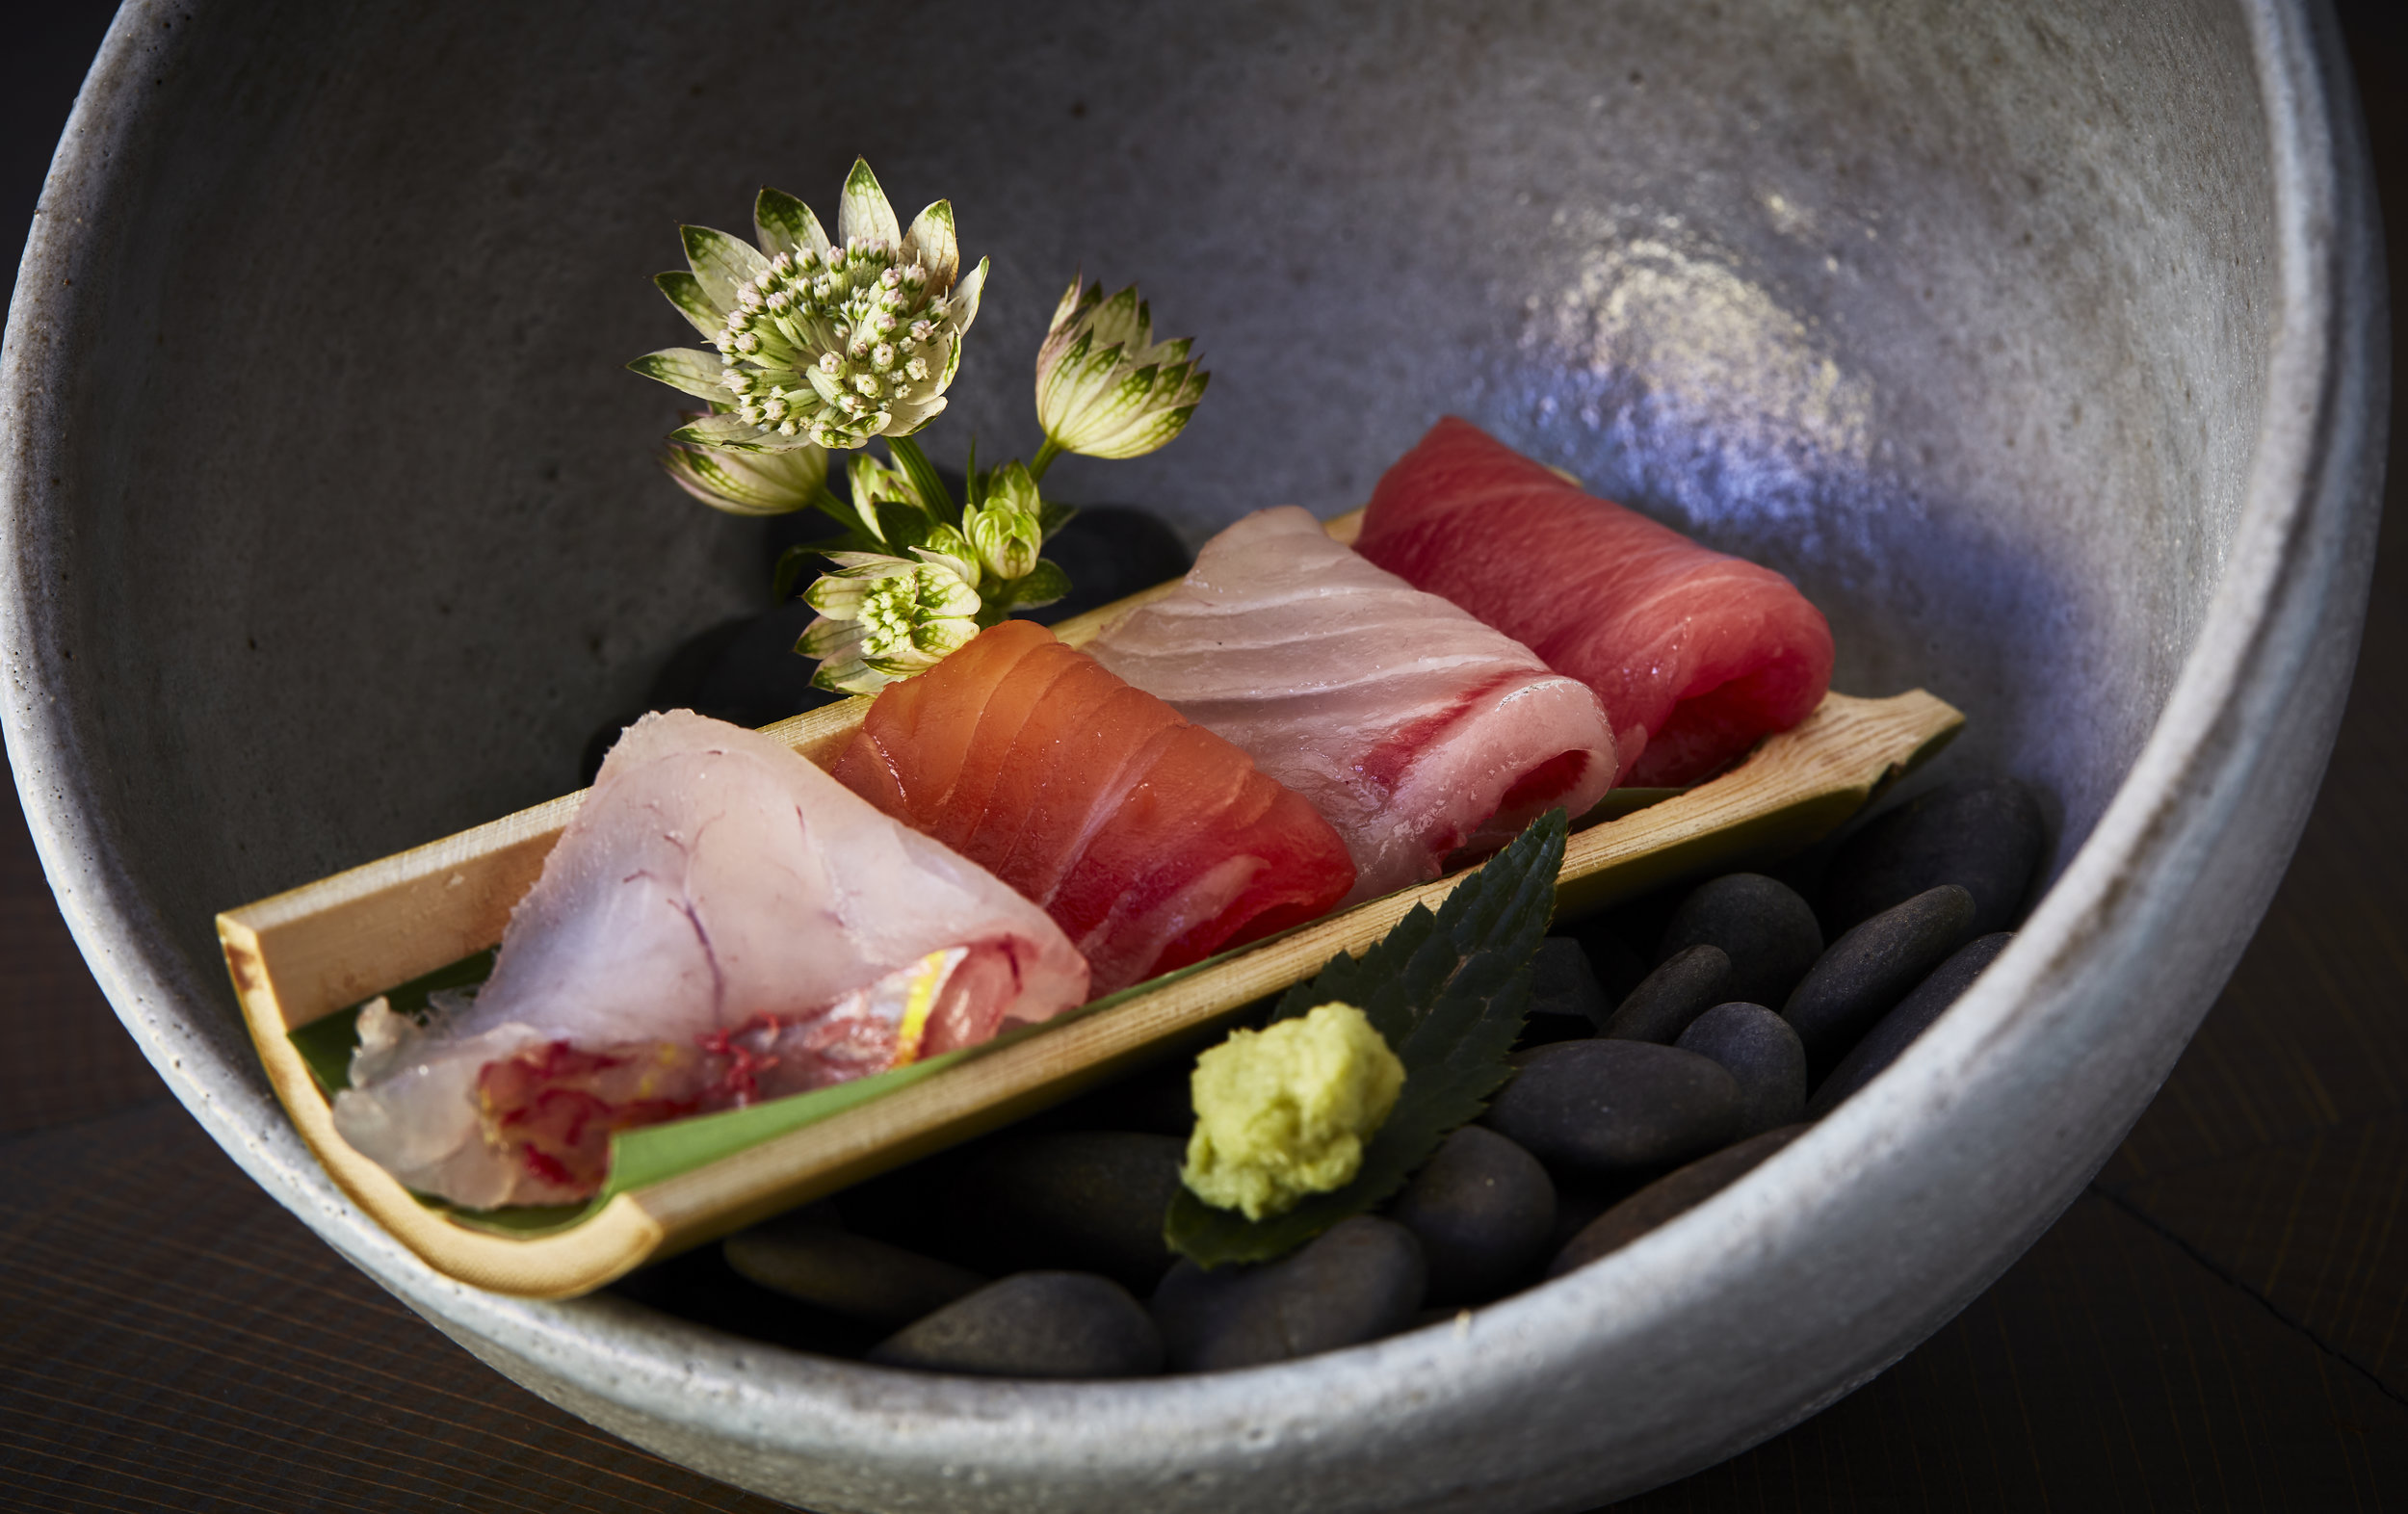 A spherical bowl contains a slice of bamboo, which olds three slices of sashimi.